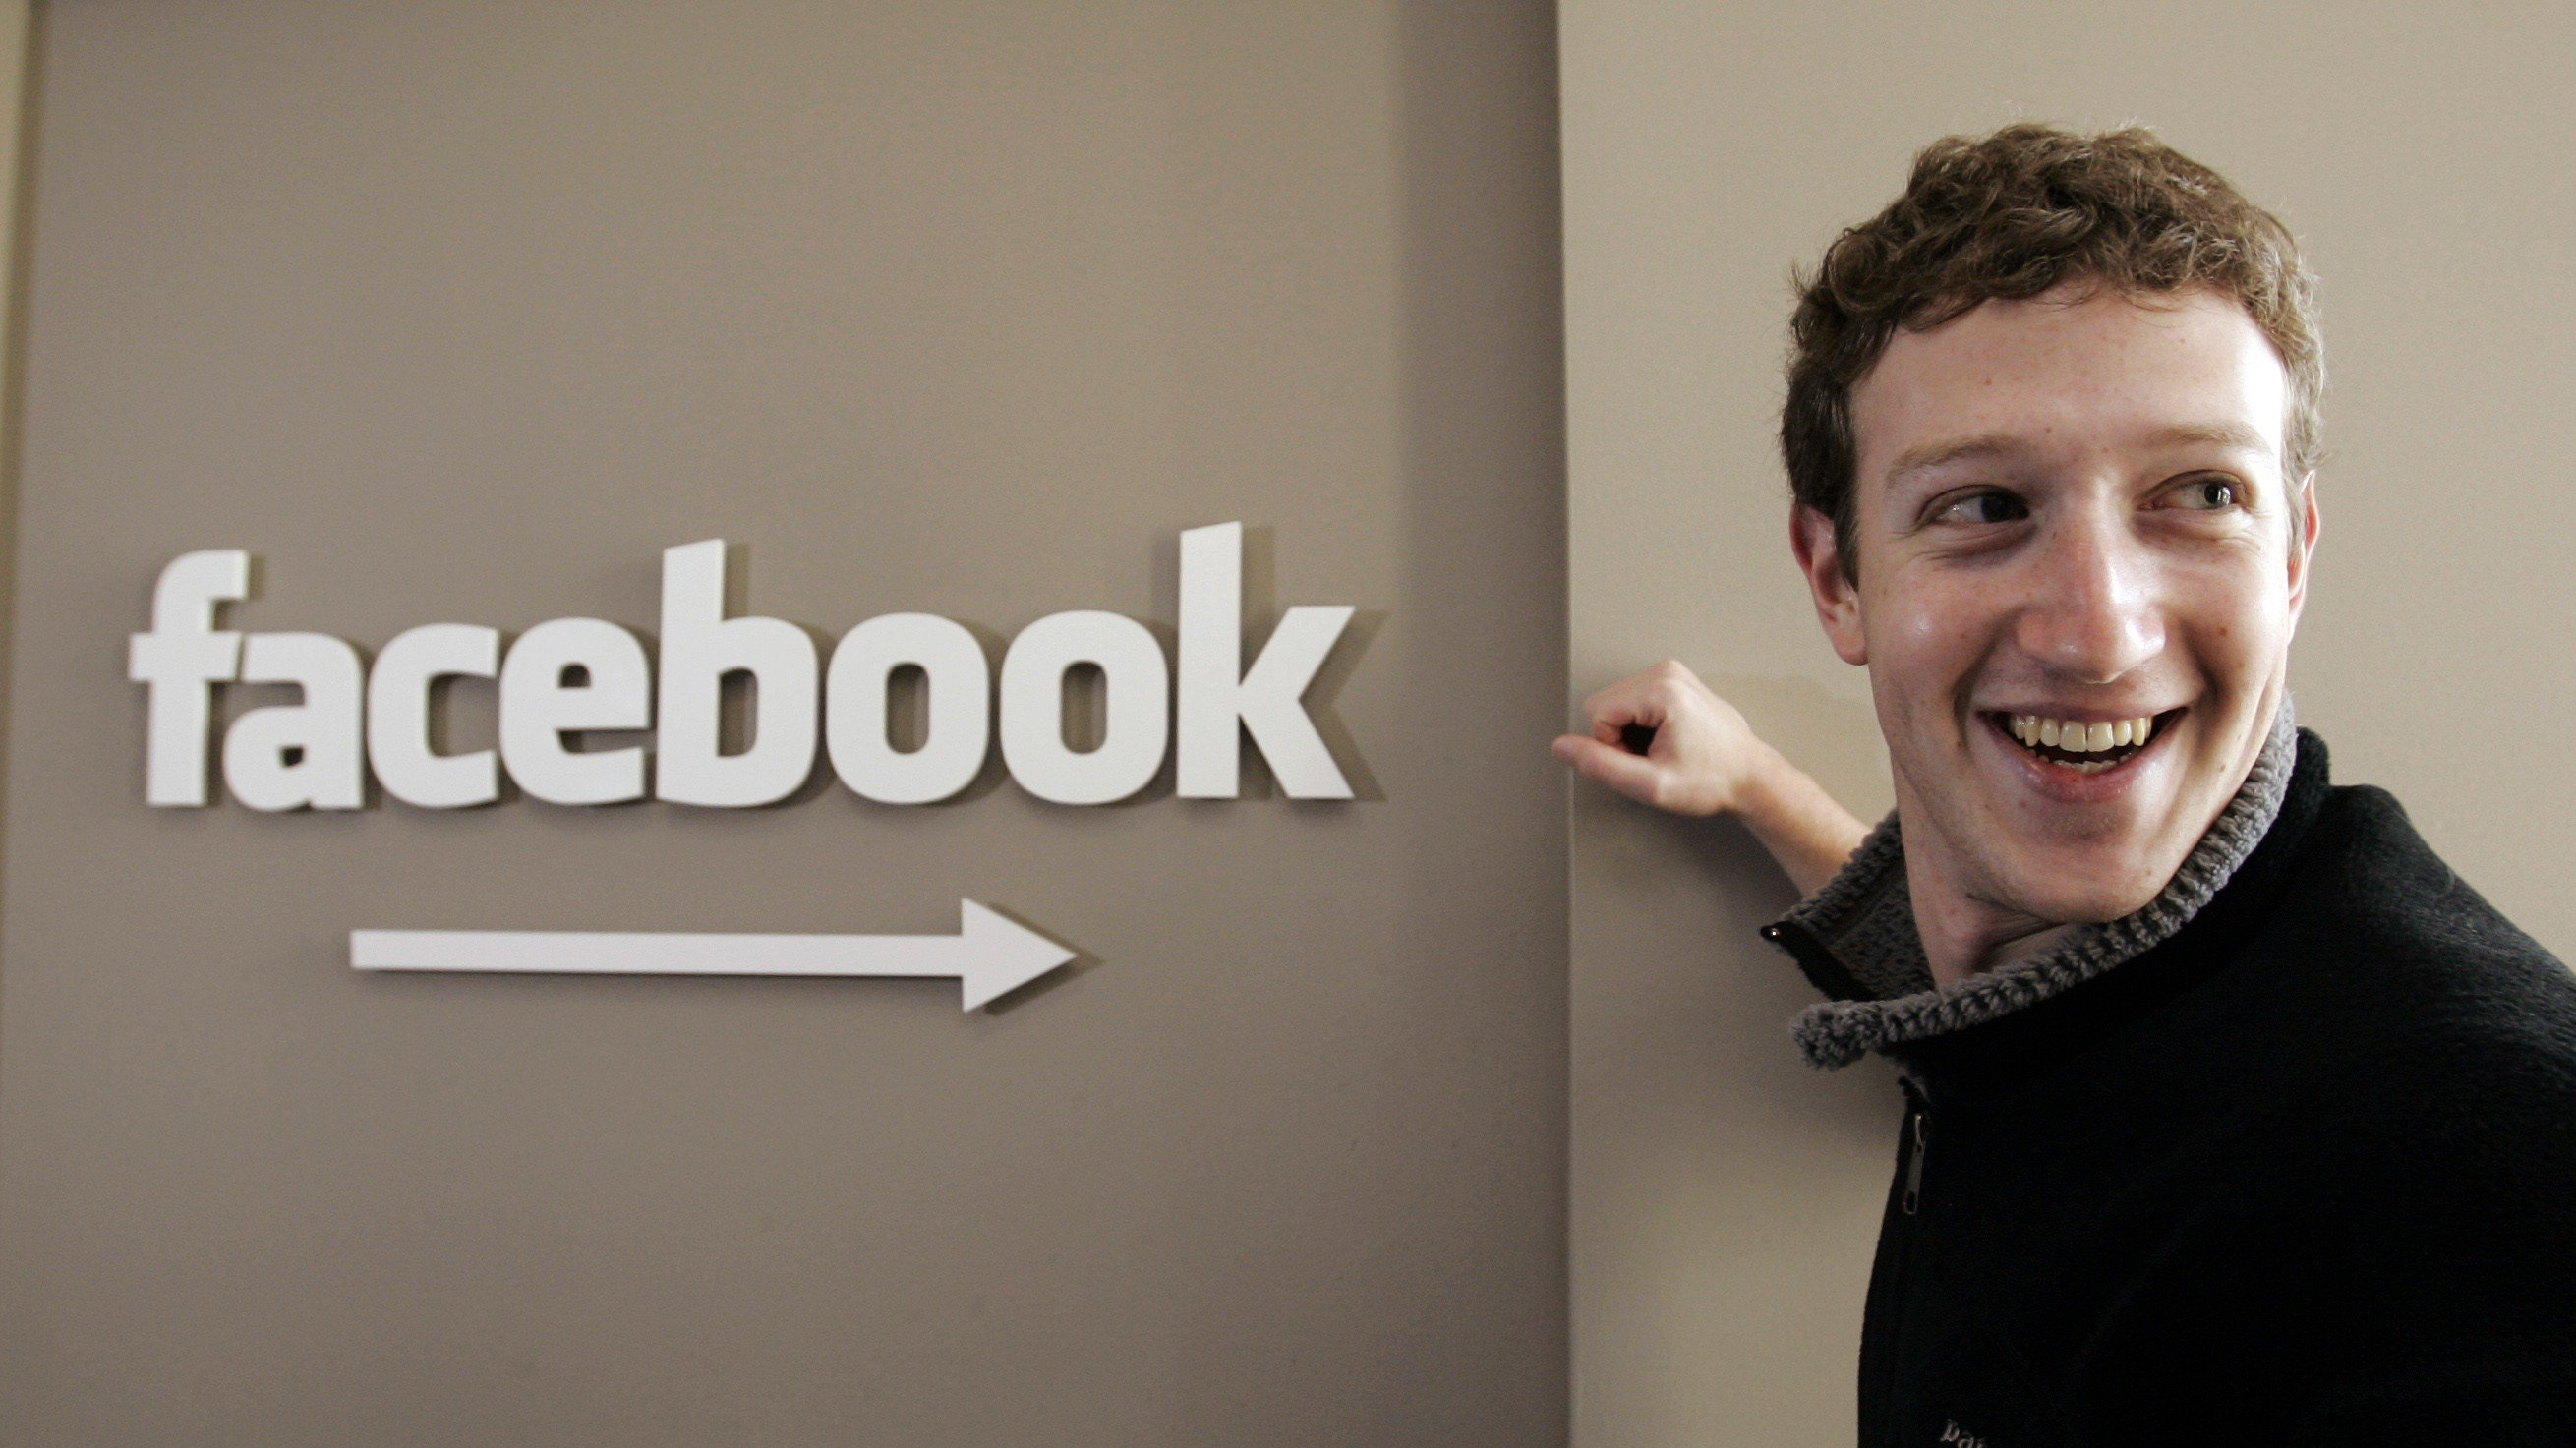 Mark+Zuckerberg+News